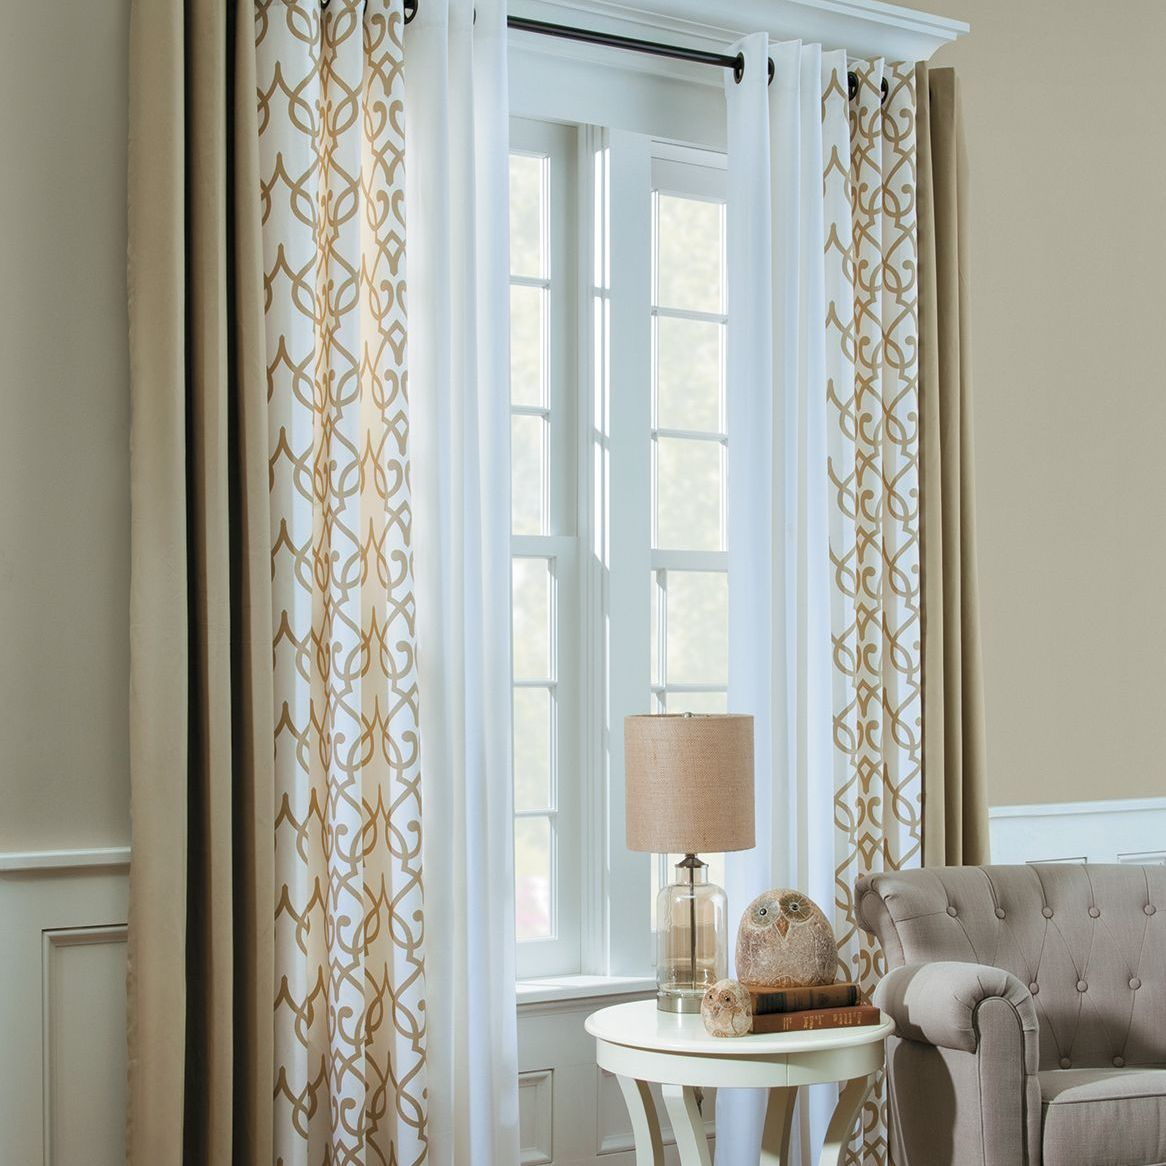 How To Measure For Drapes